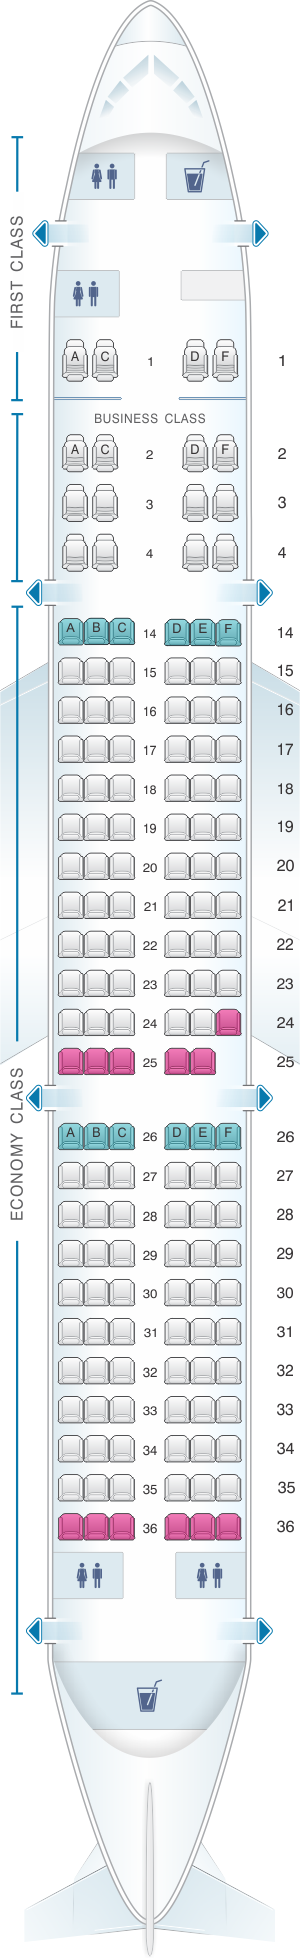 Seat map for Hi Fly Airbus A321 153pax